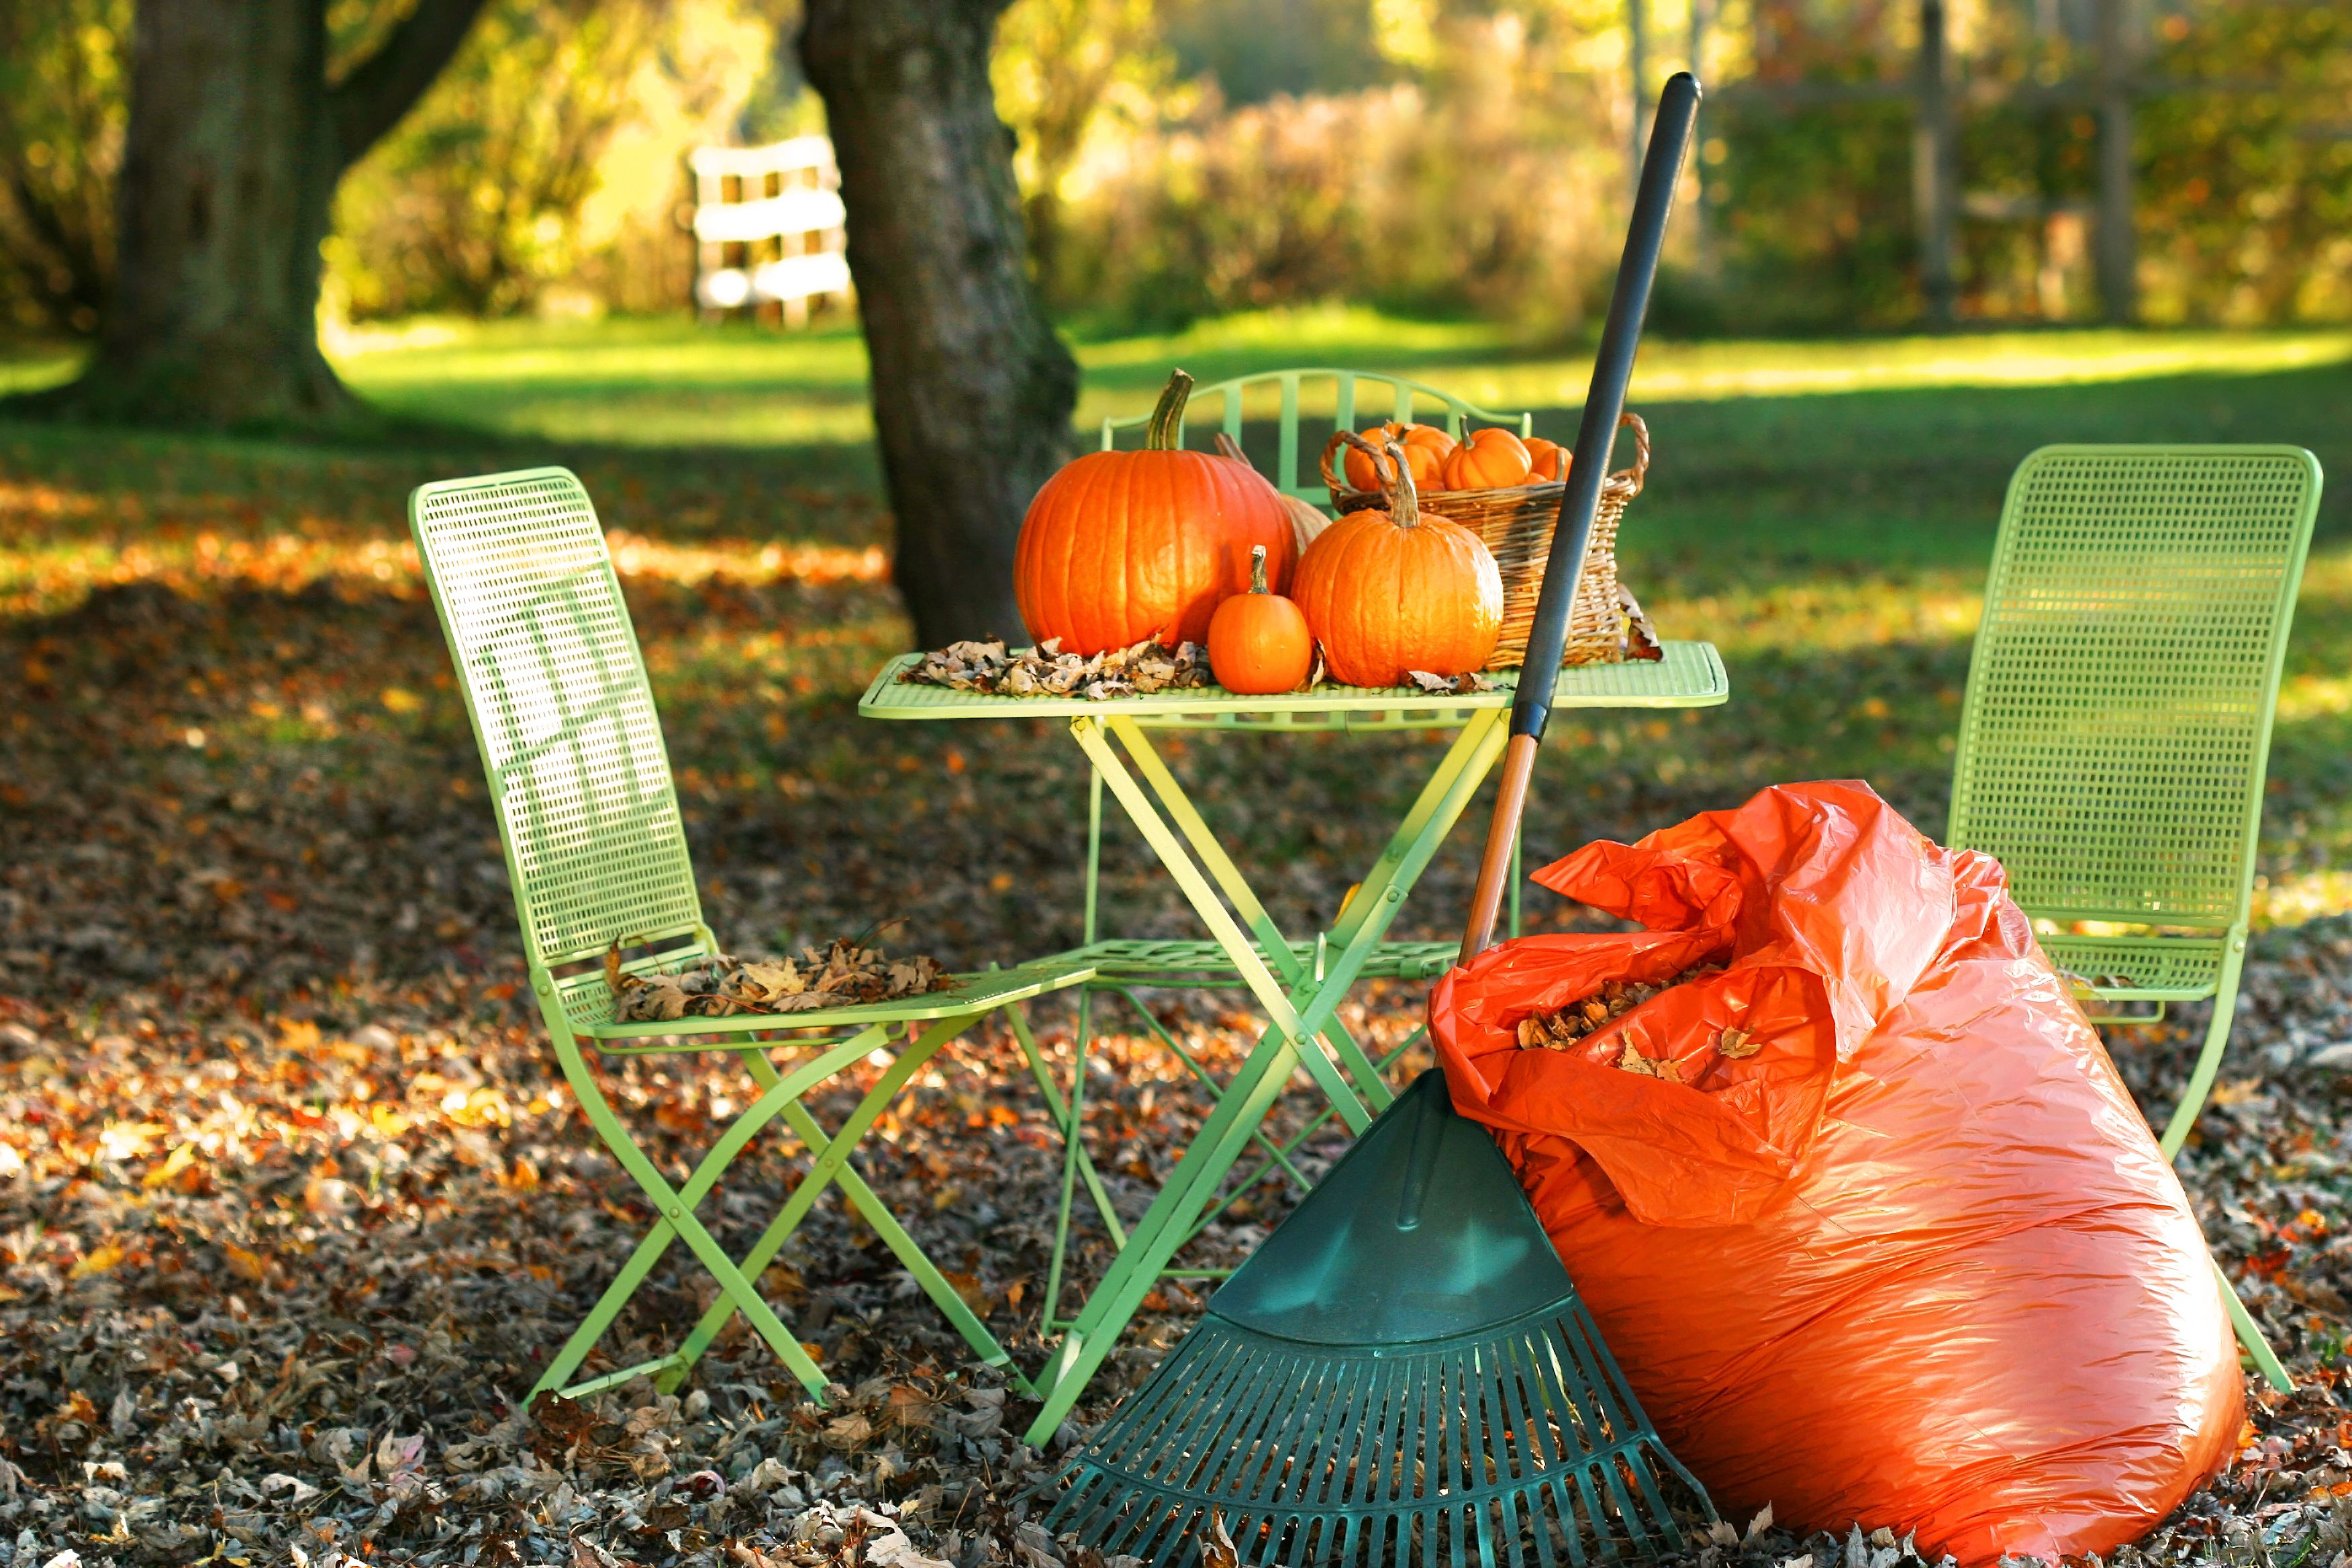 Fall Home Clean up Dumpster Rental Baltimore